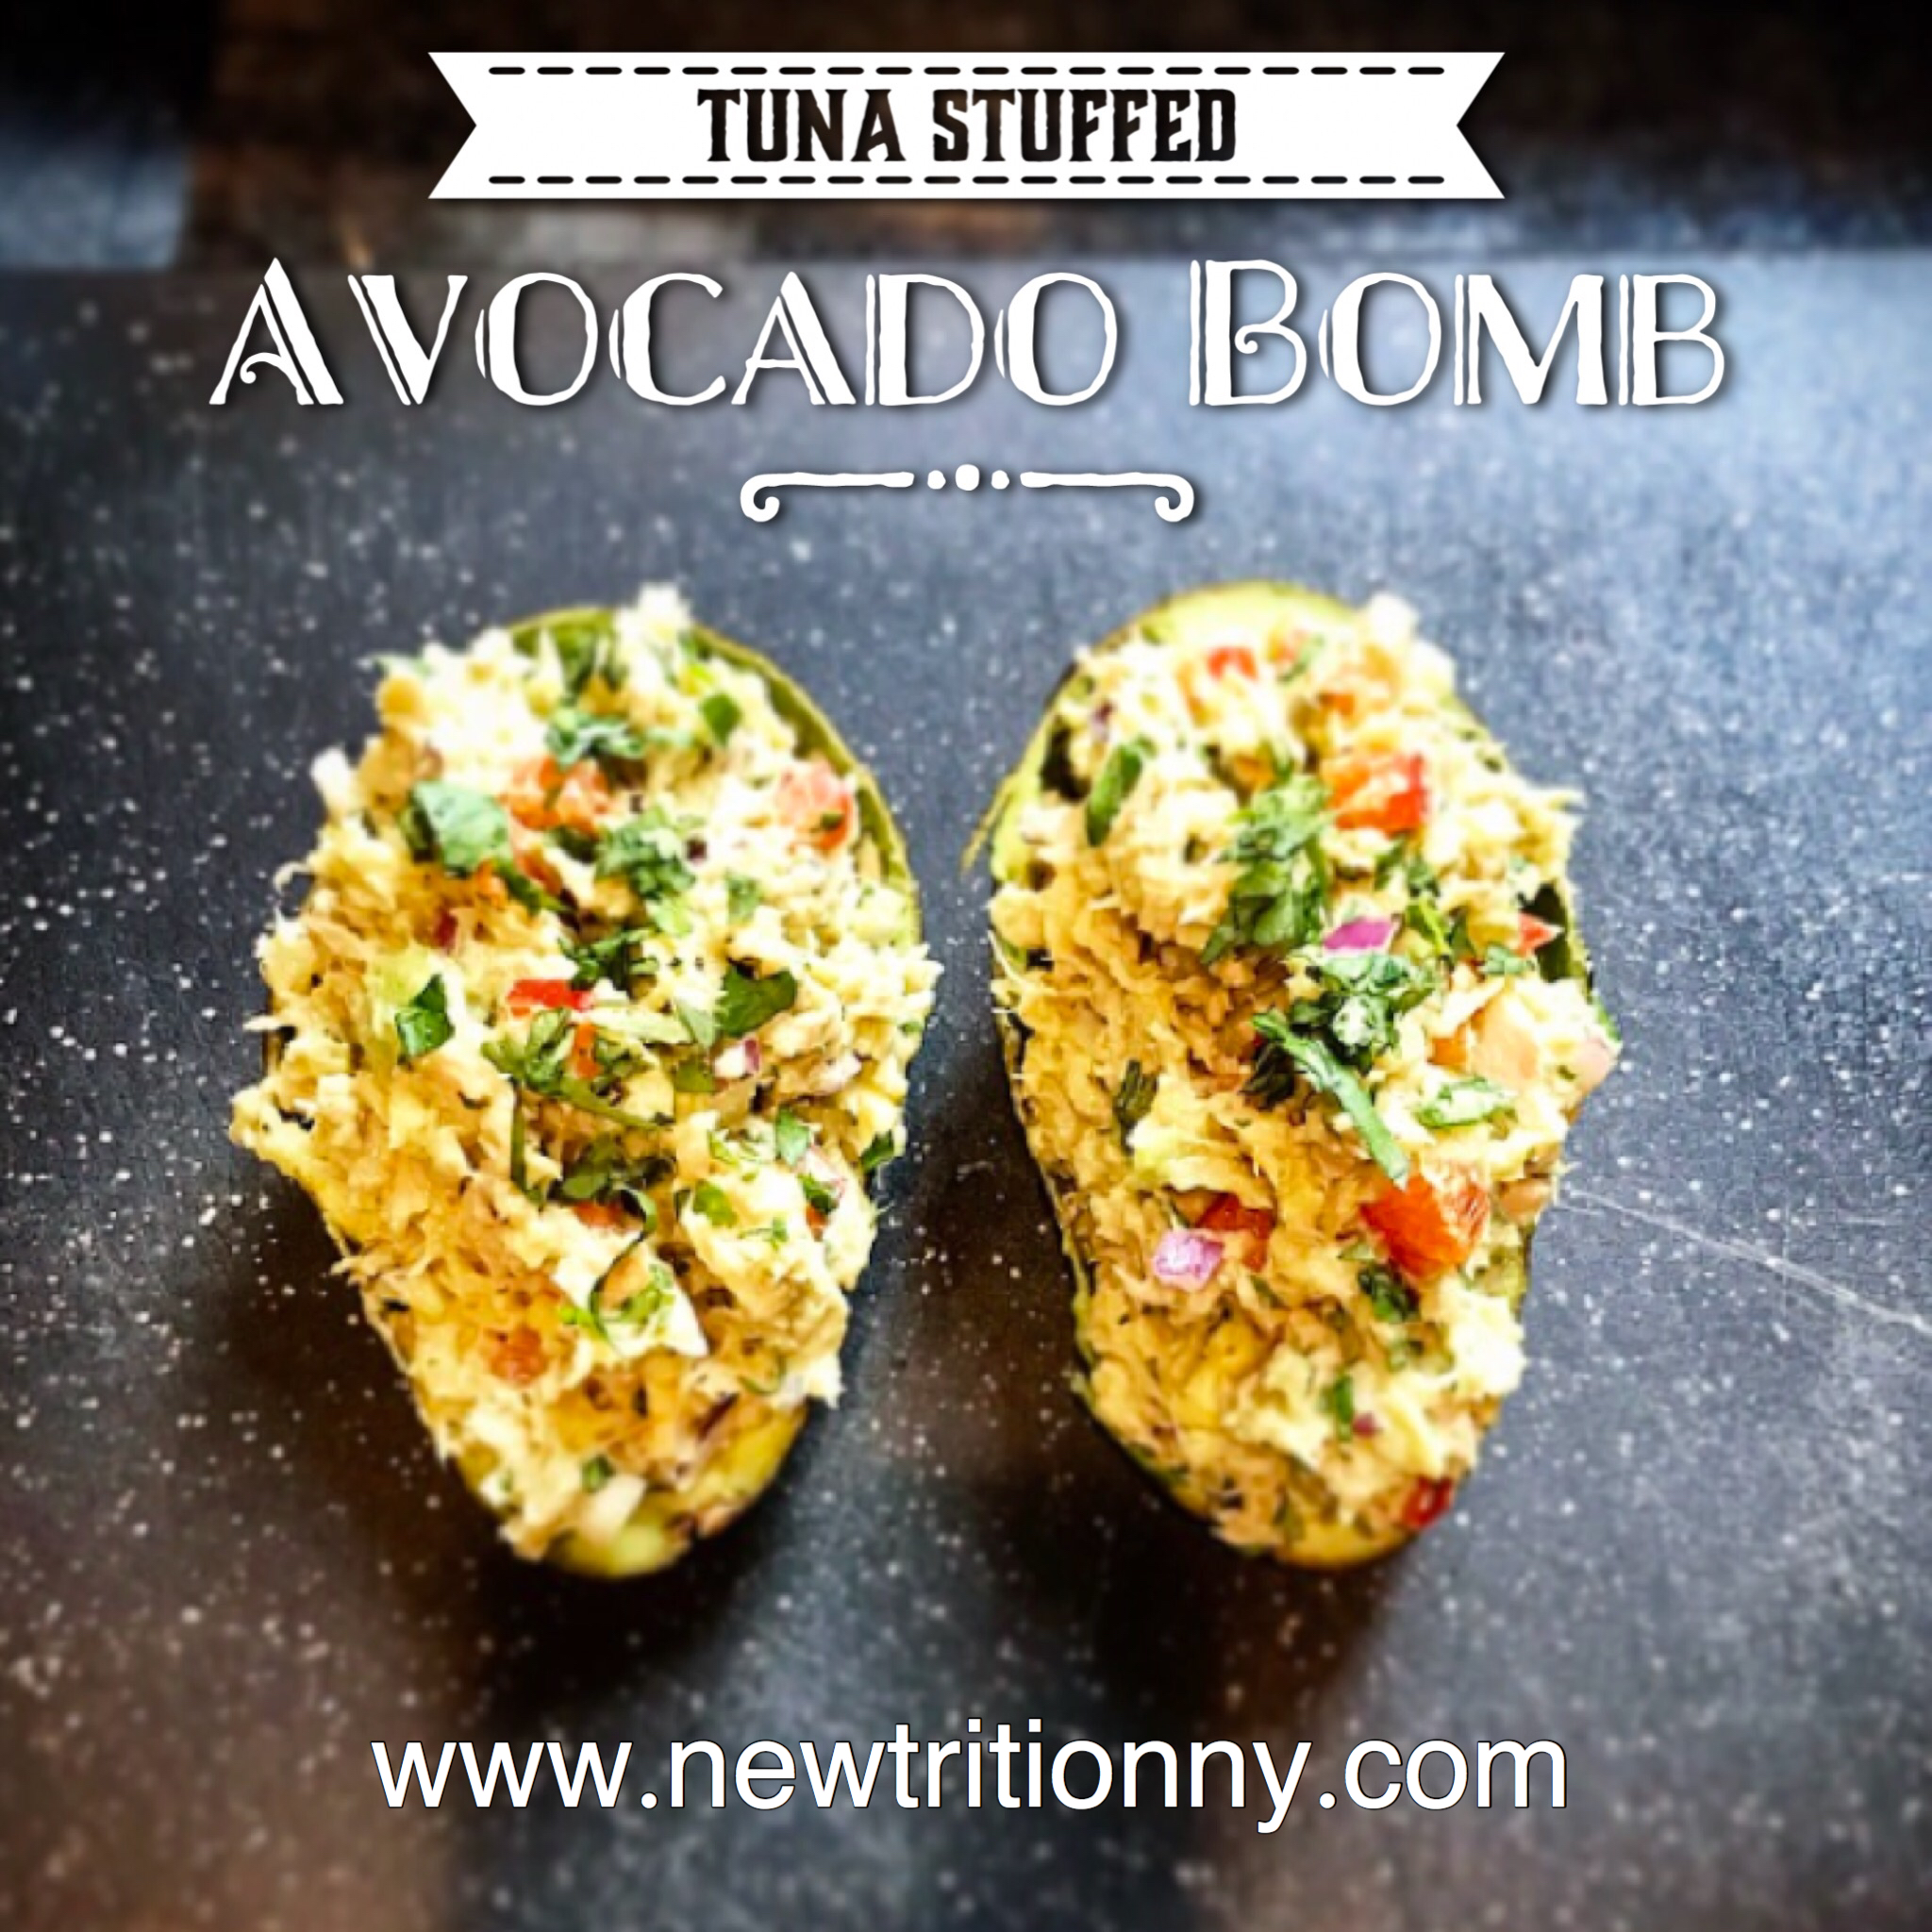 Tuna stuffed avocado bomb recipe - newtritionny.comnewtrition new you